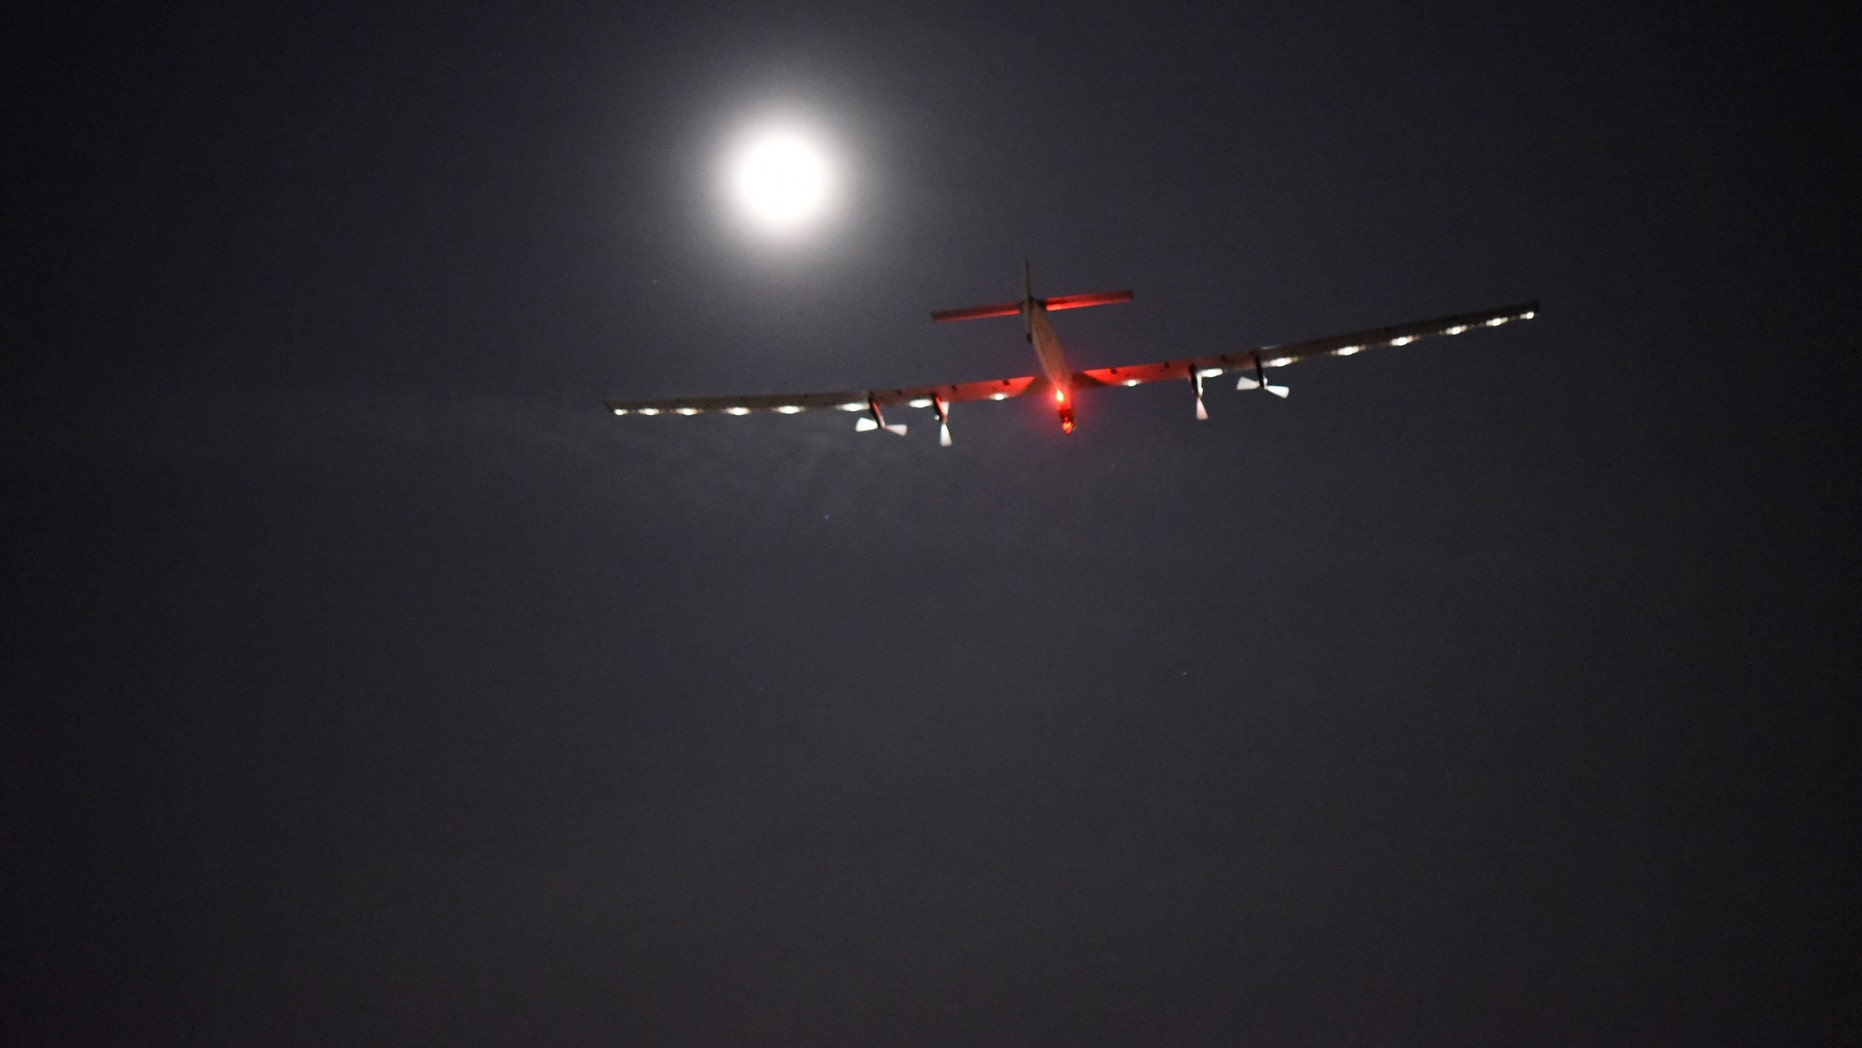 """File photo - In this photo provided by Solar Impulse, """"Solar Impulse 2,"""" the solar airplane of Swiss pioneers Bertrand Piccard and Andre Borschberg, moves through the sky shortly after the take off from Dayton International Airport, in Dayton, Ohio to Lehigh Valley International Airport in Allentown, Pa., on Wednesday, May 25, 2016. (Jean Revillard/Solar Impulse via AP"""